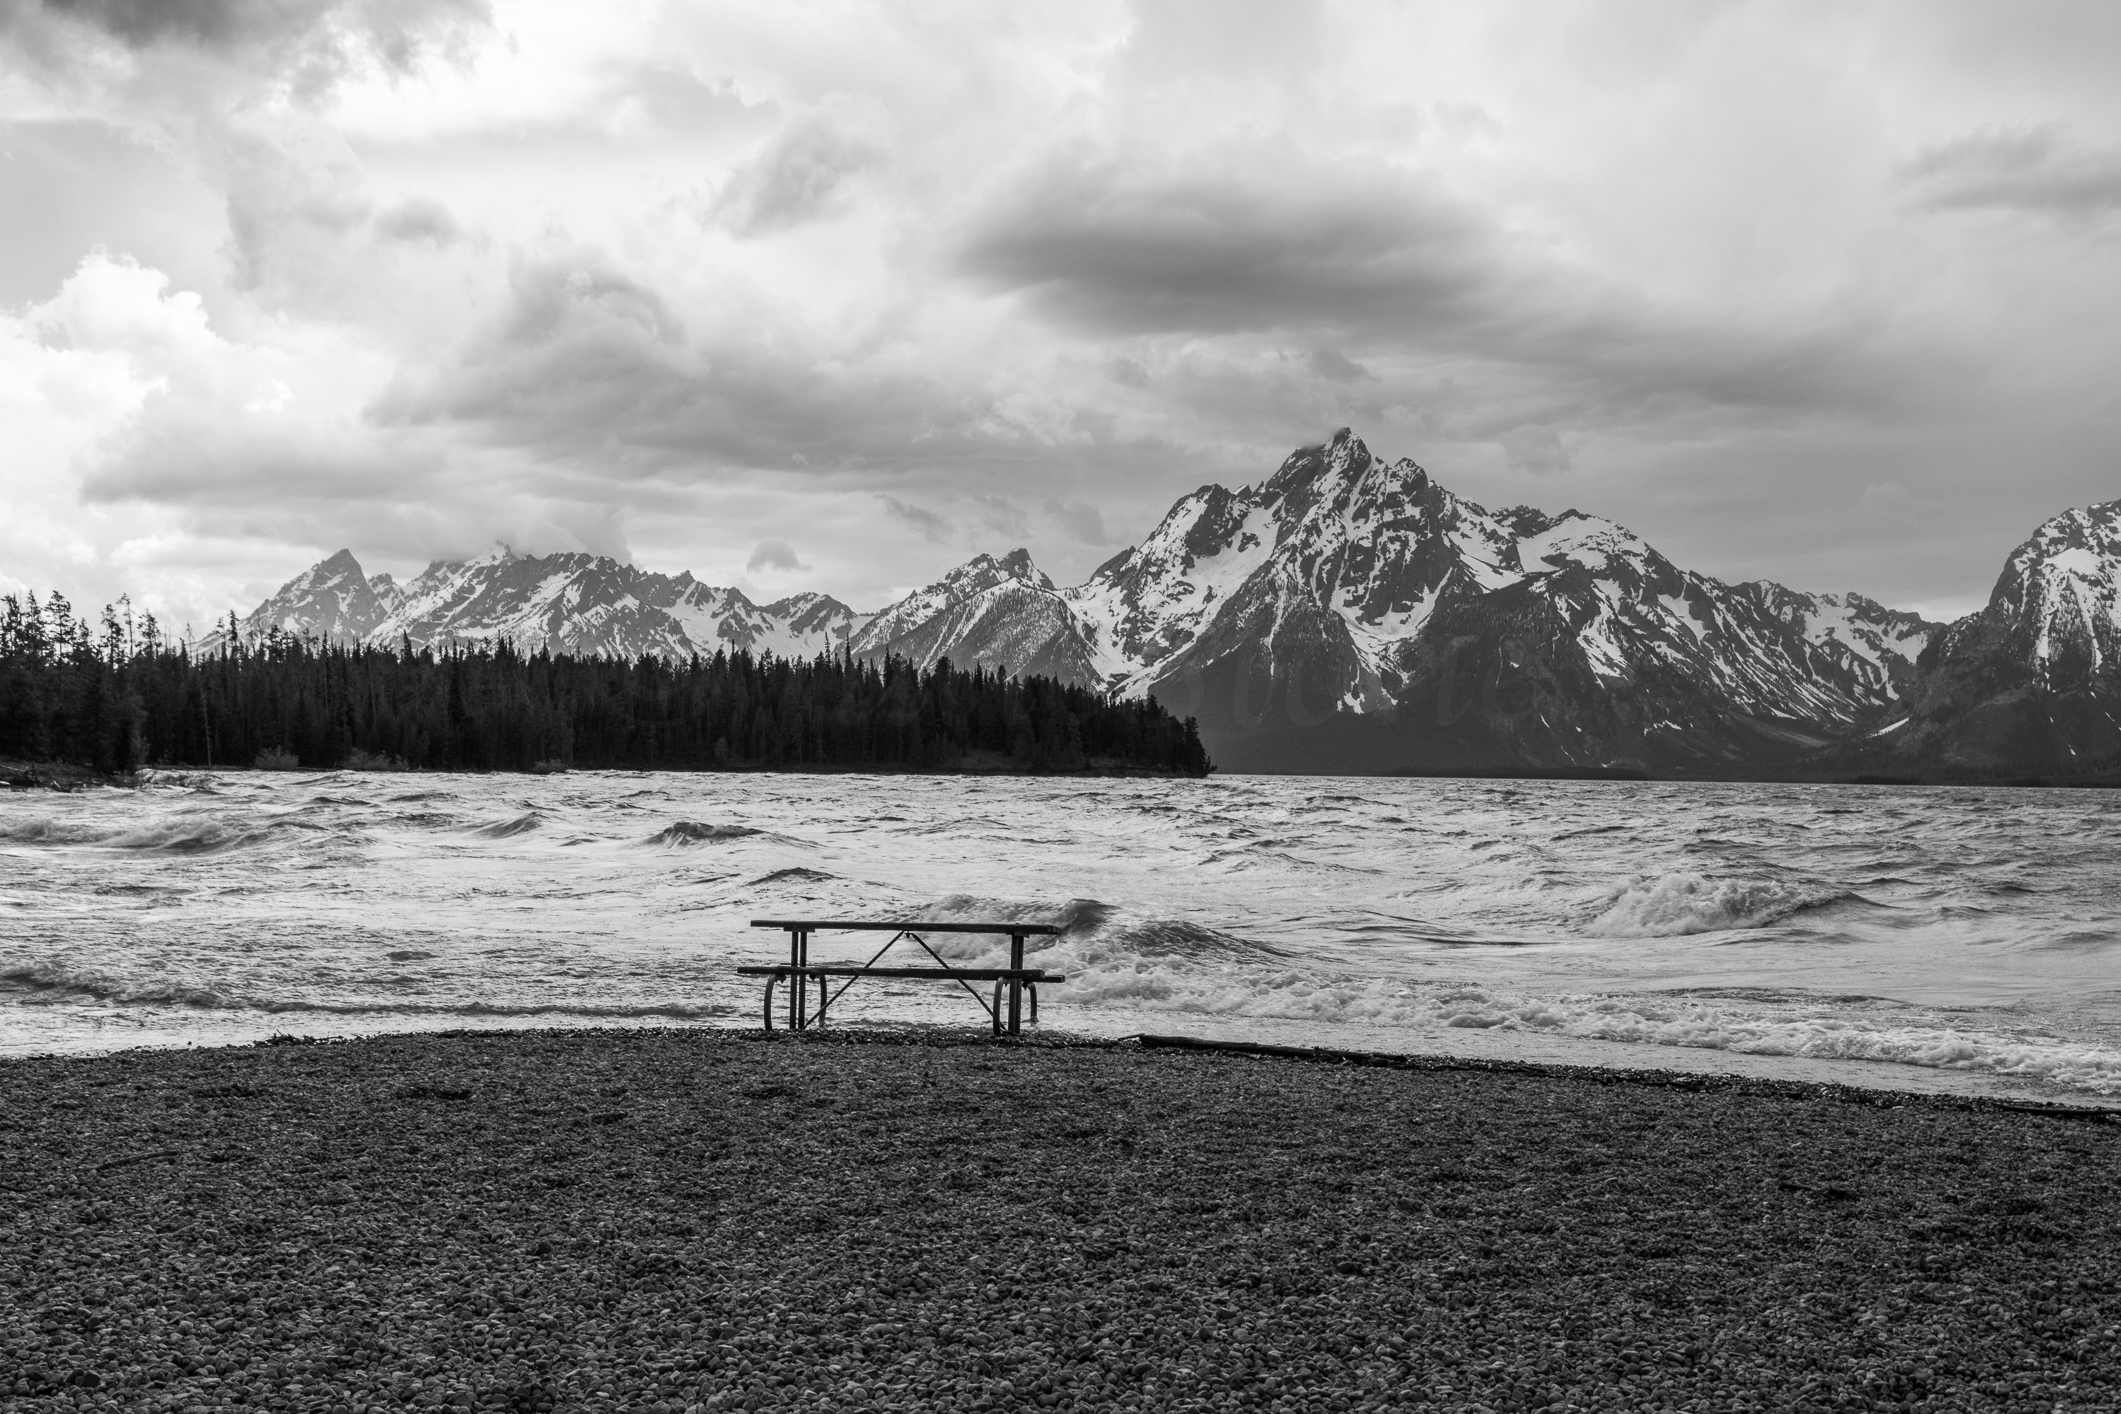 Colter Bay, Image # 3469